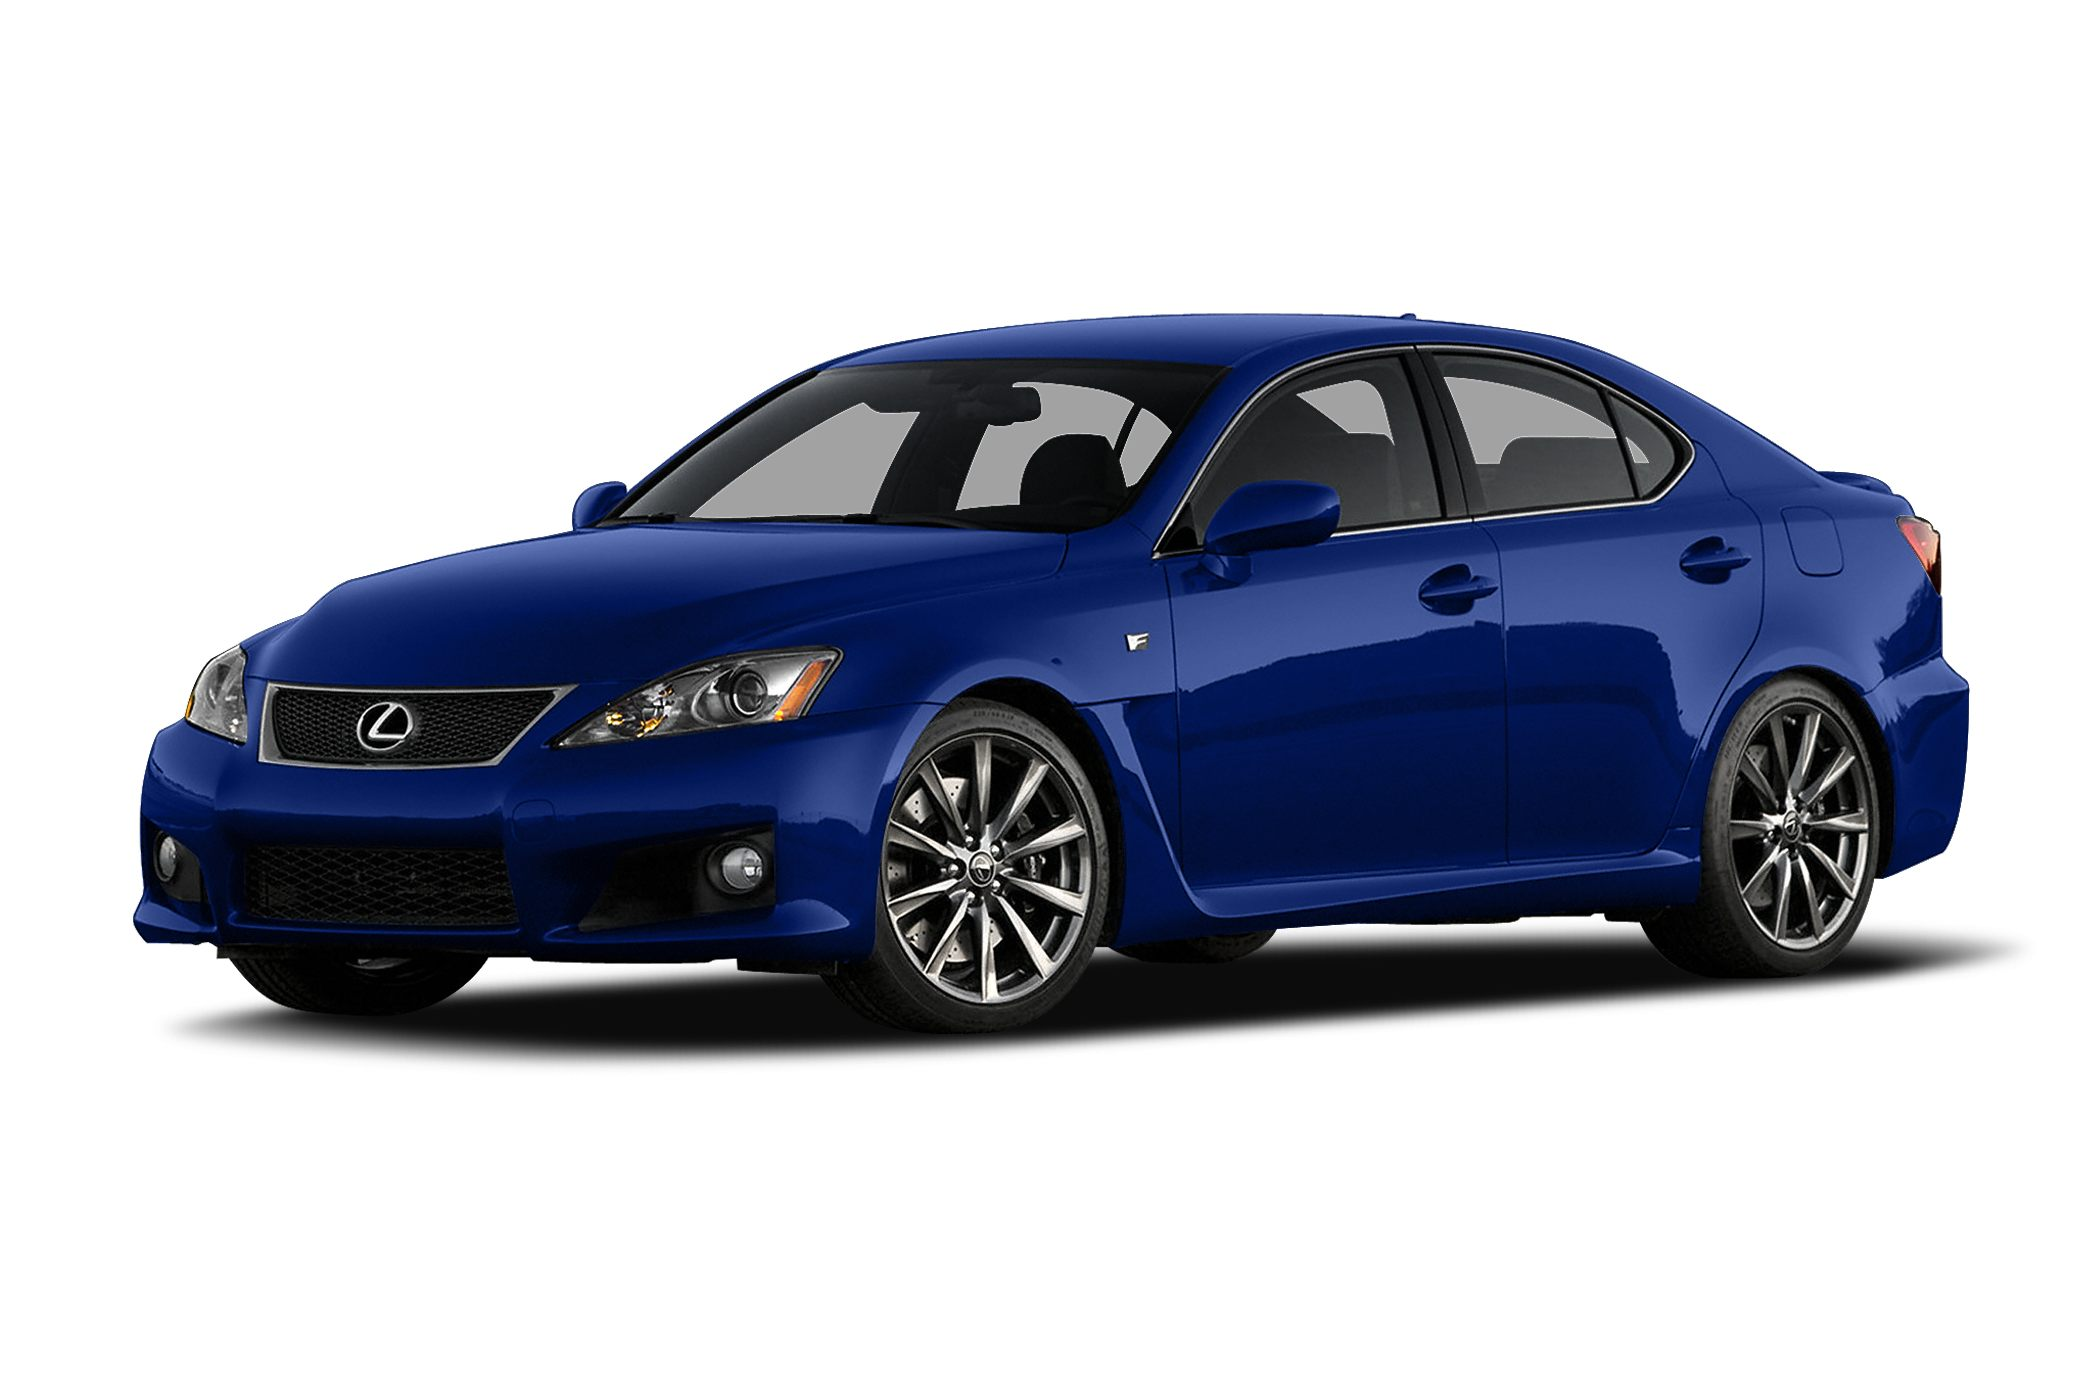 2010 Lexus IS-F Base Prices are PLUS tax tag title fee 799 Pre-Delivery Service Fee and 185